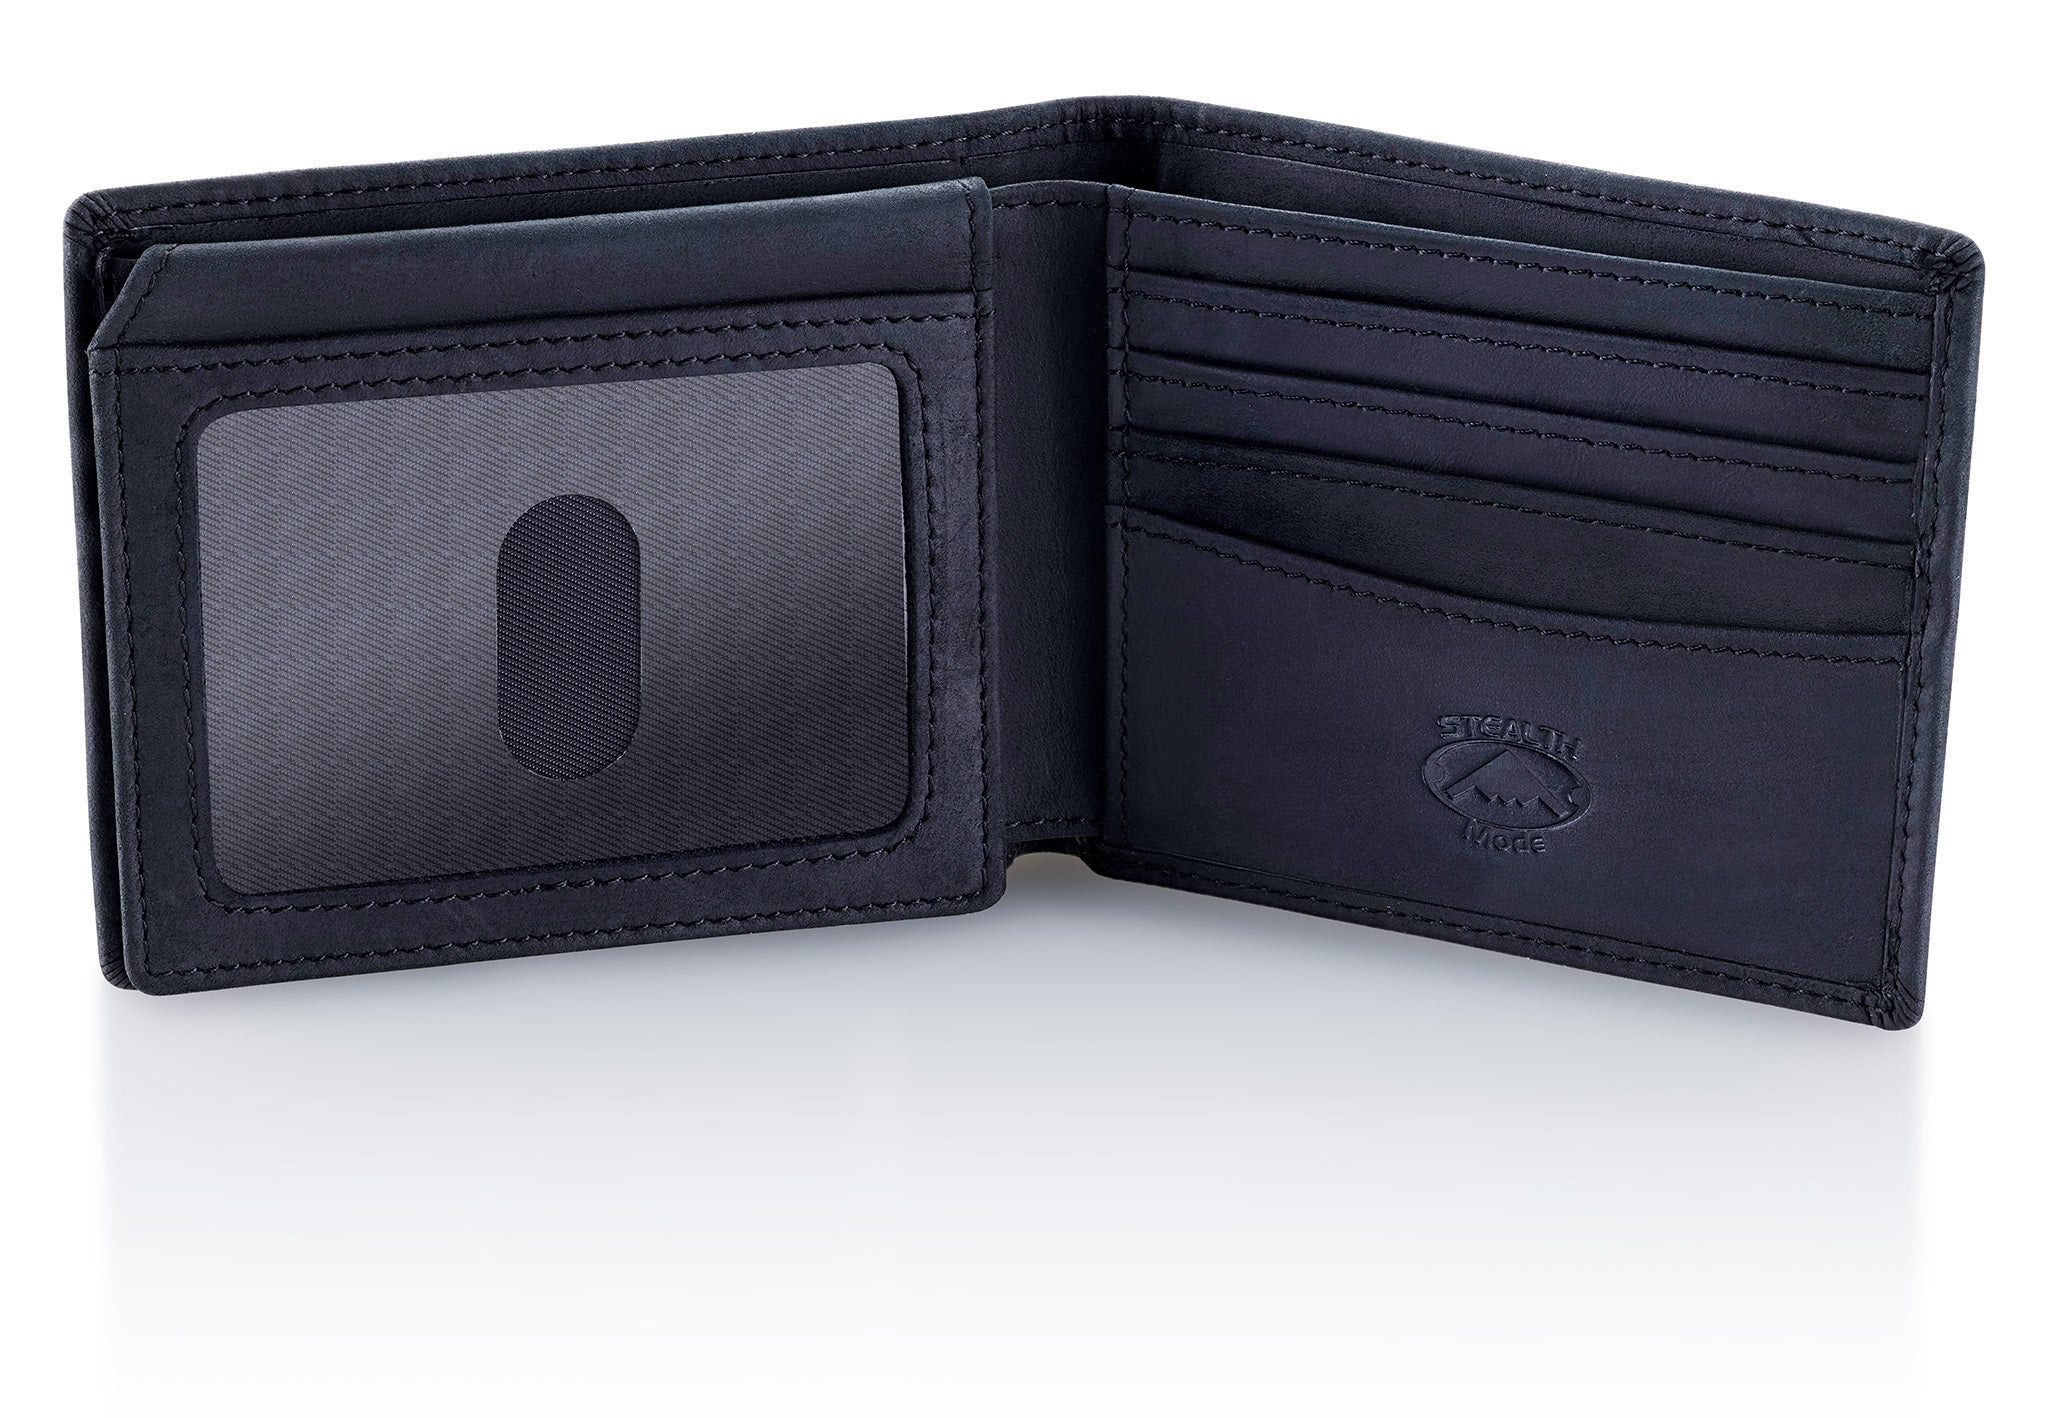 Black Bifold Wallet for Men With ID Window and RFID Blocking